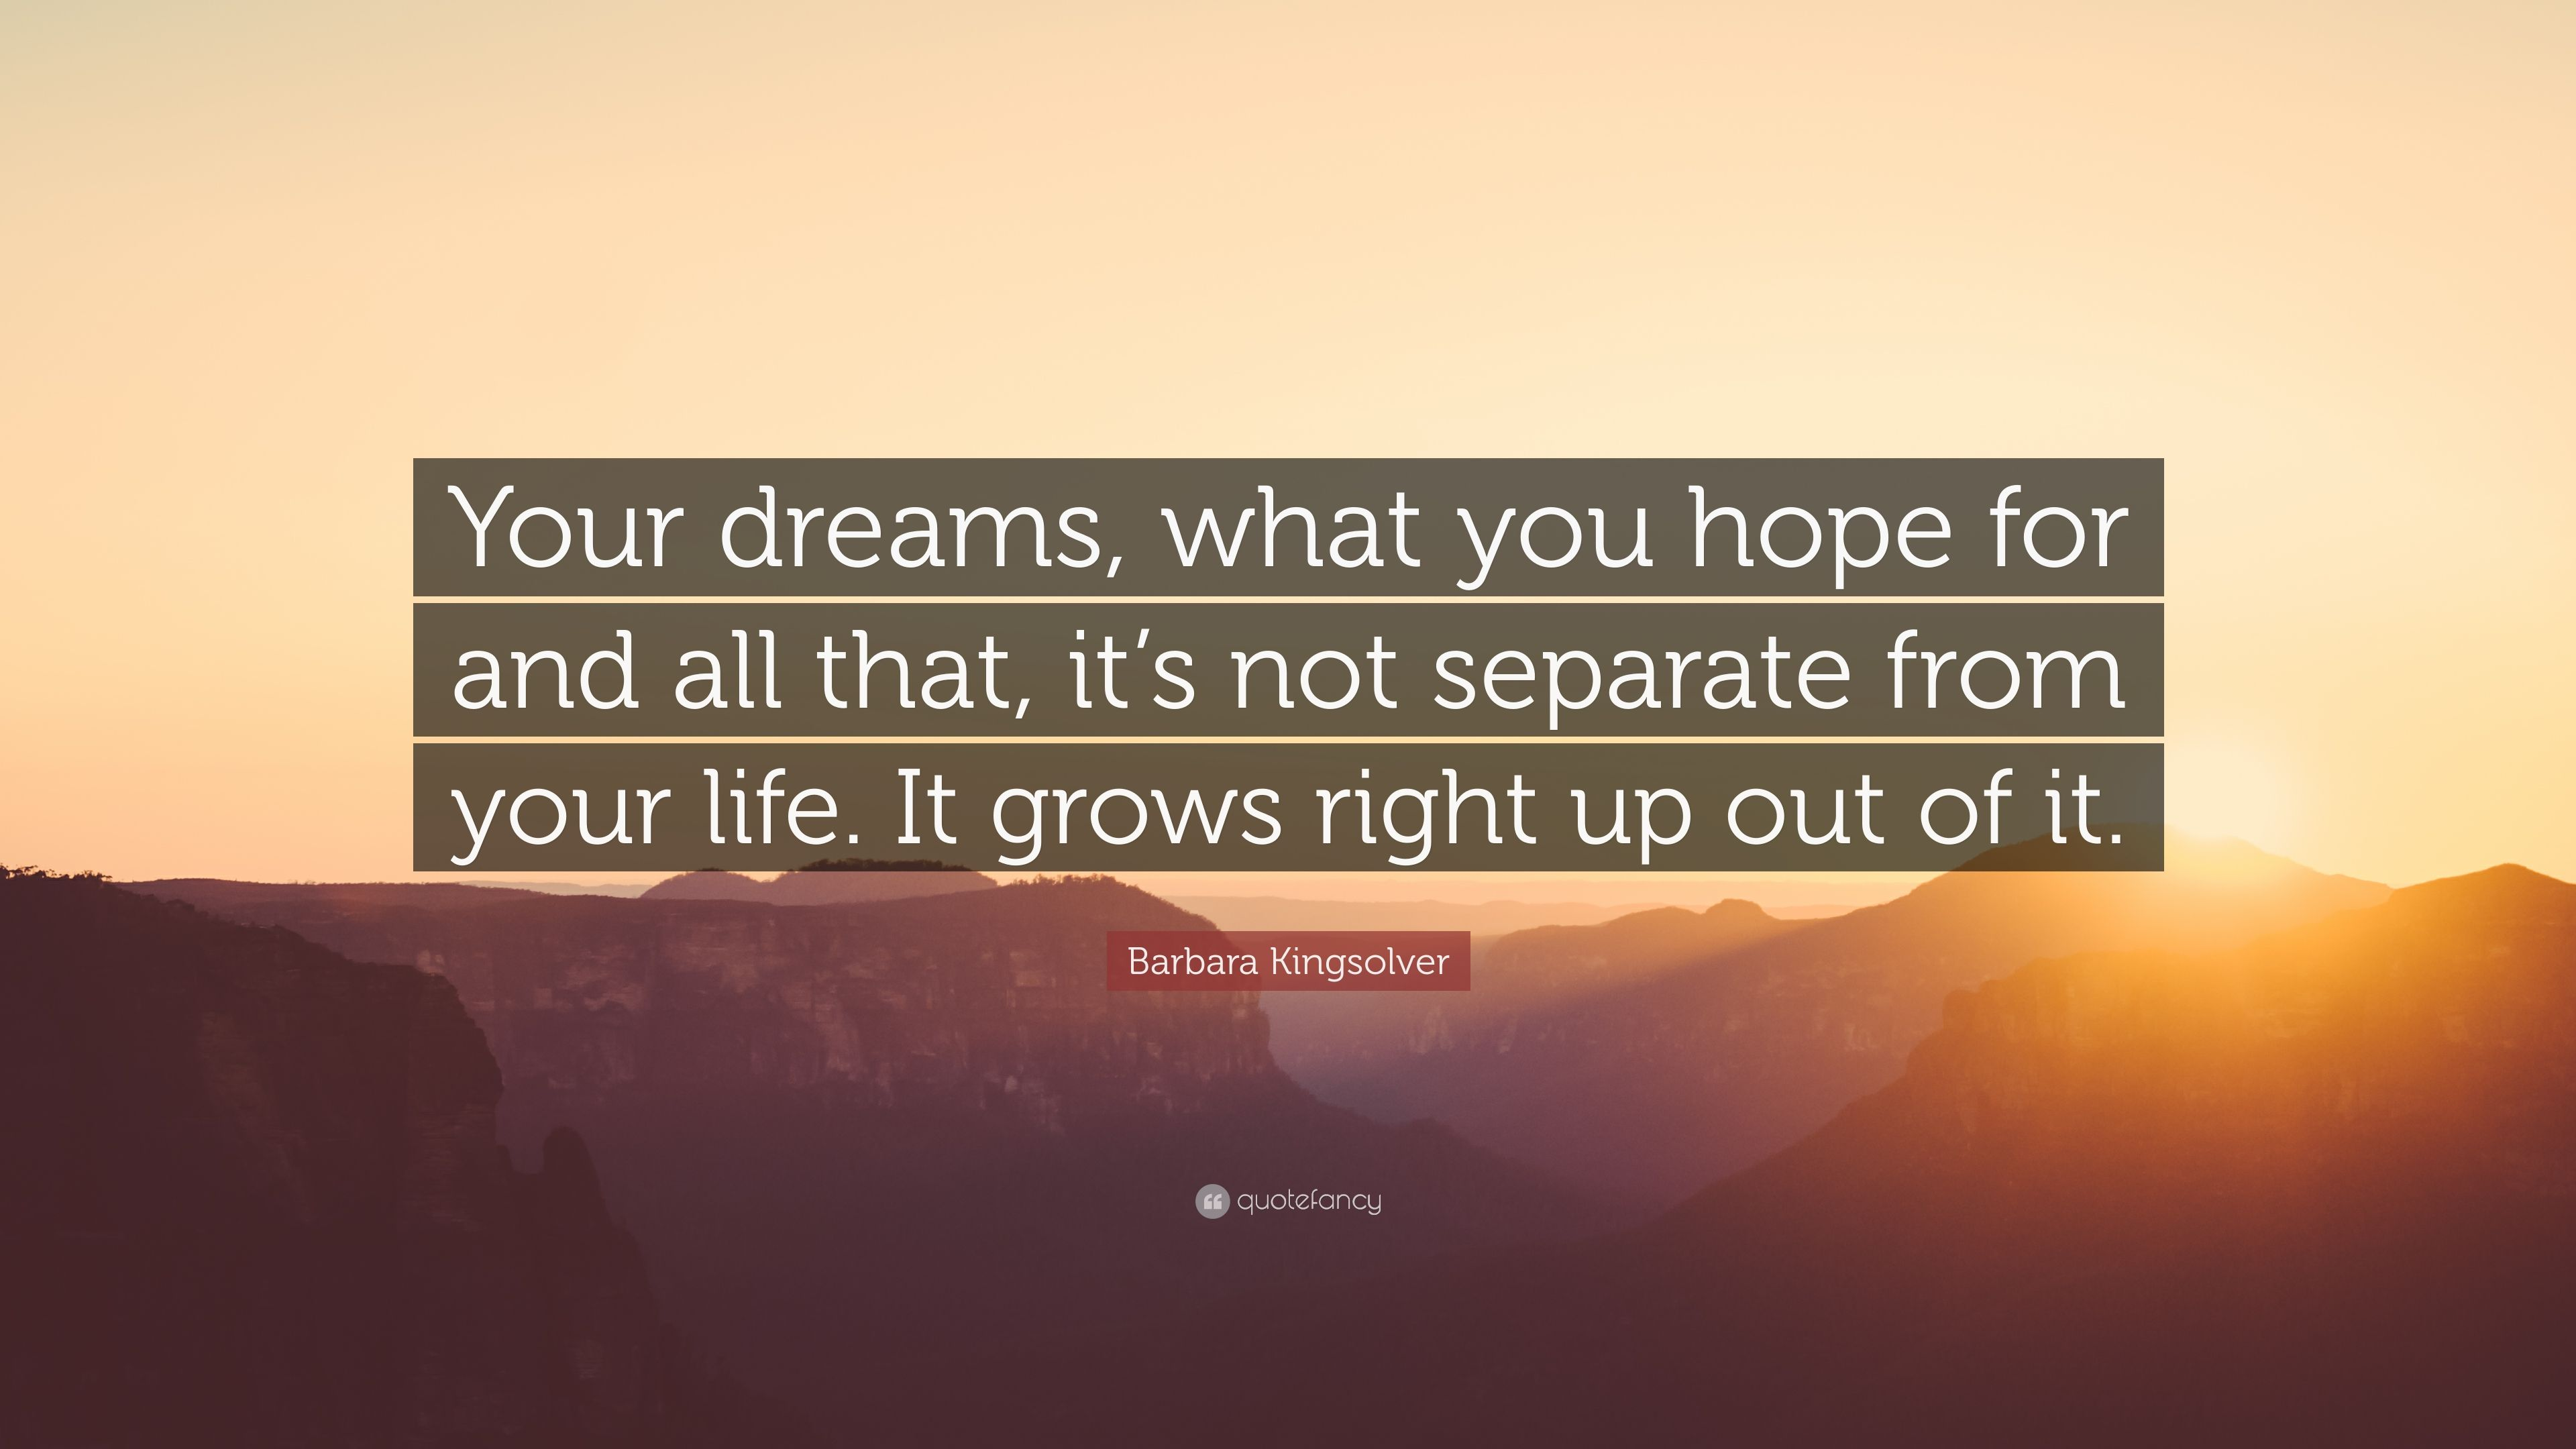 "Barbara Kingsolver Quote: ""Your dreams, what you hope for and all that, it's  not separate from your life. It grows right up out of it."" (6 wallpapers) -  Quotefancy"